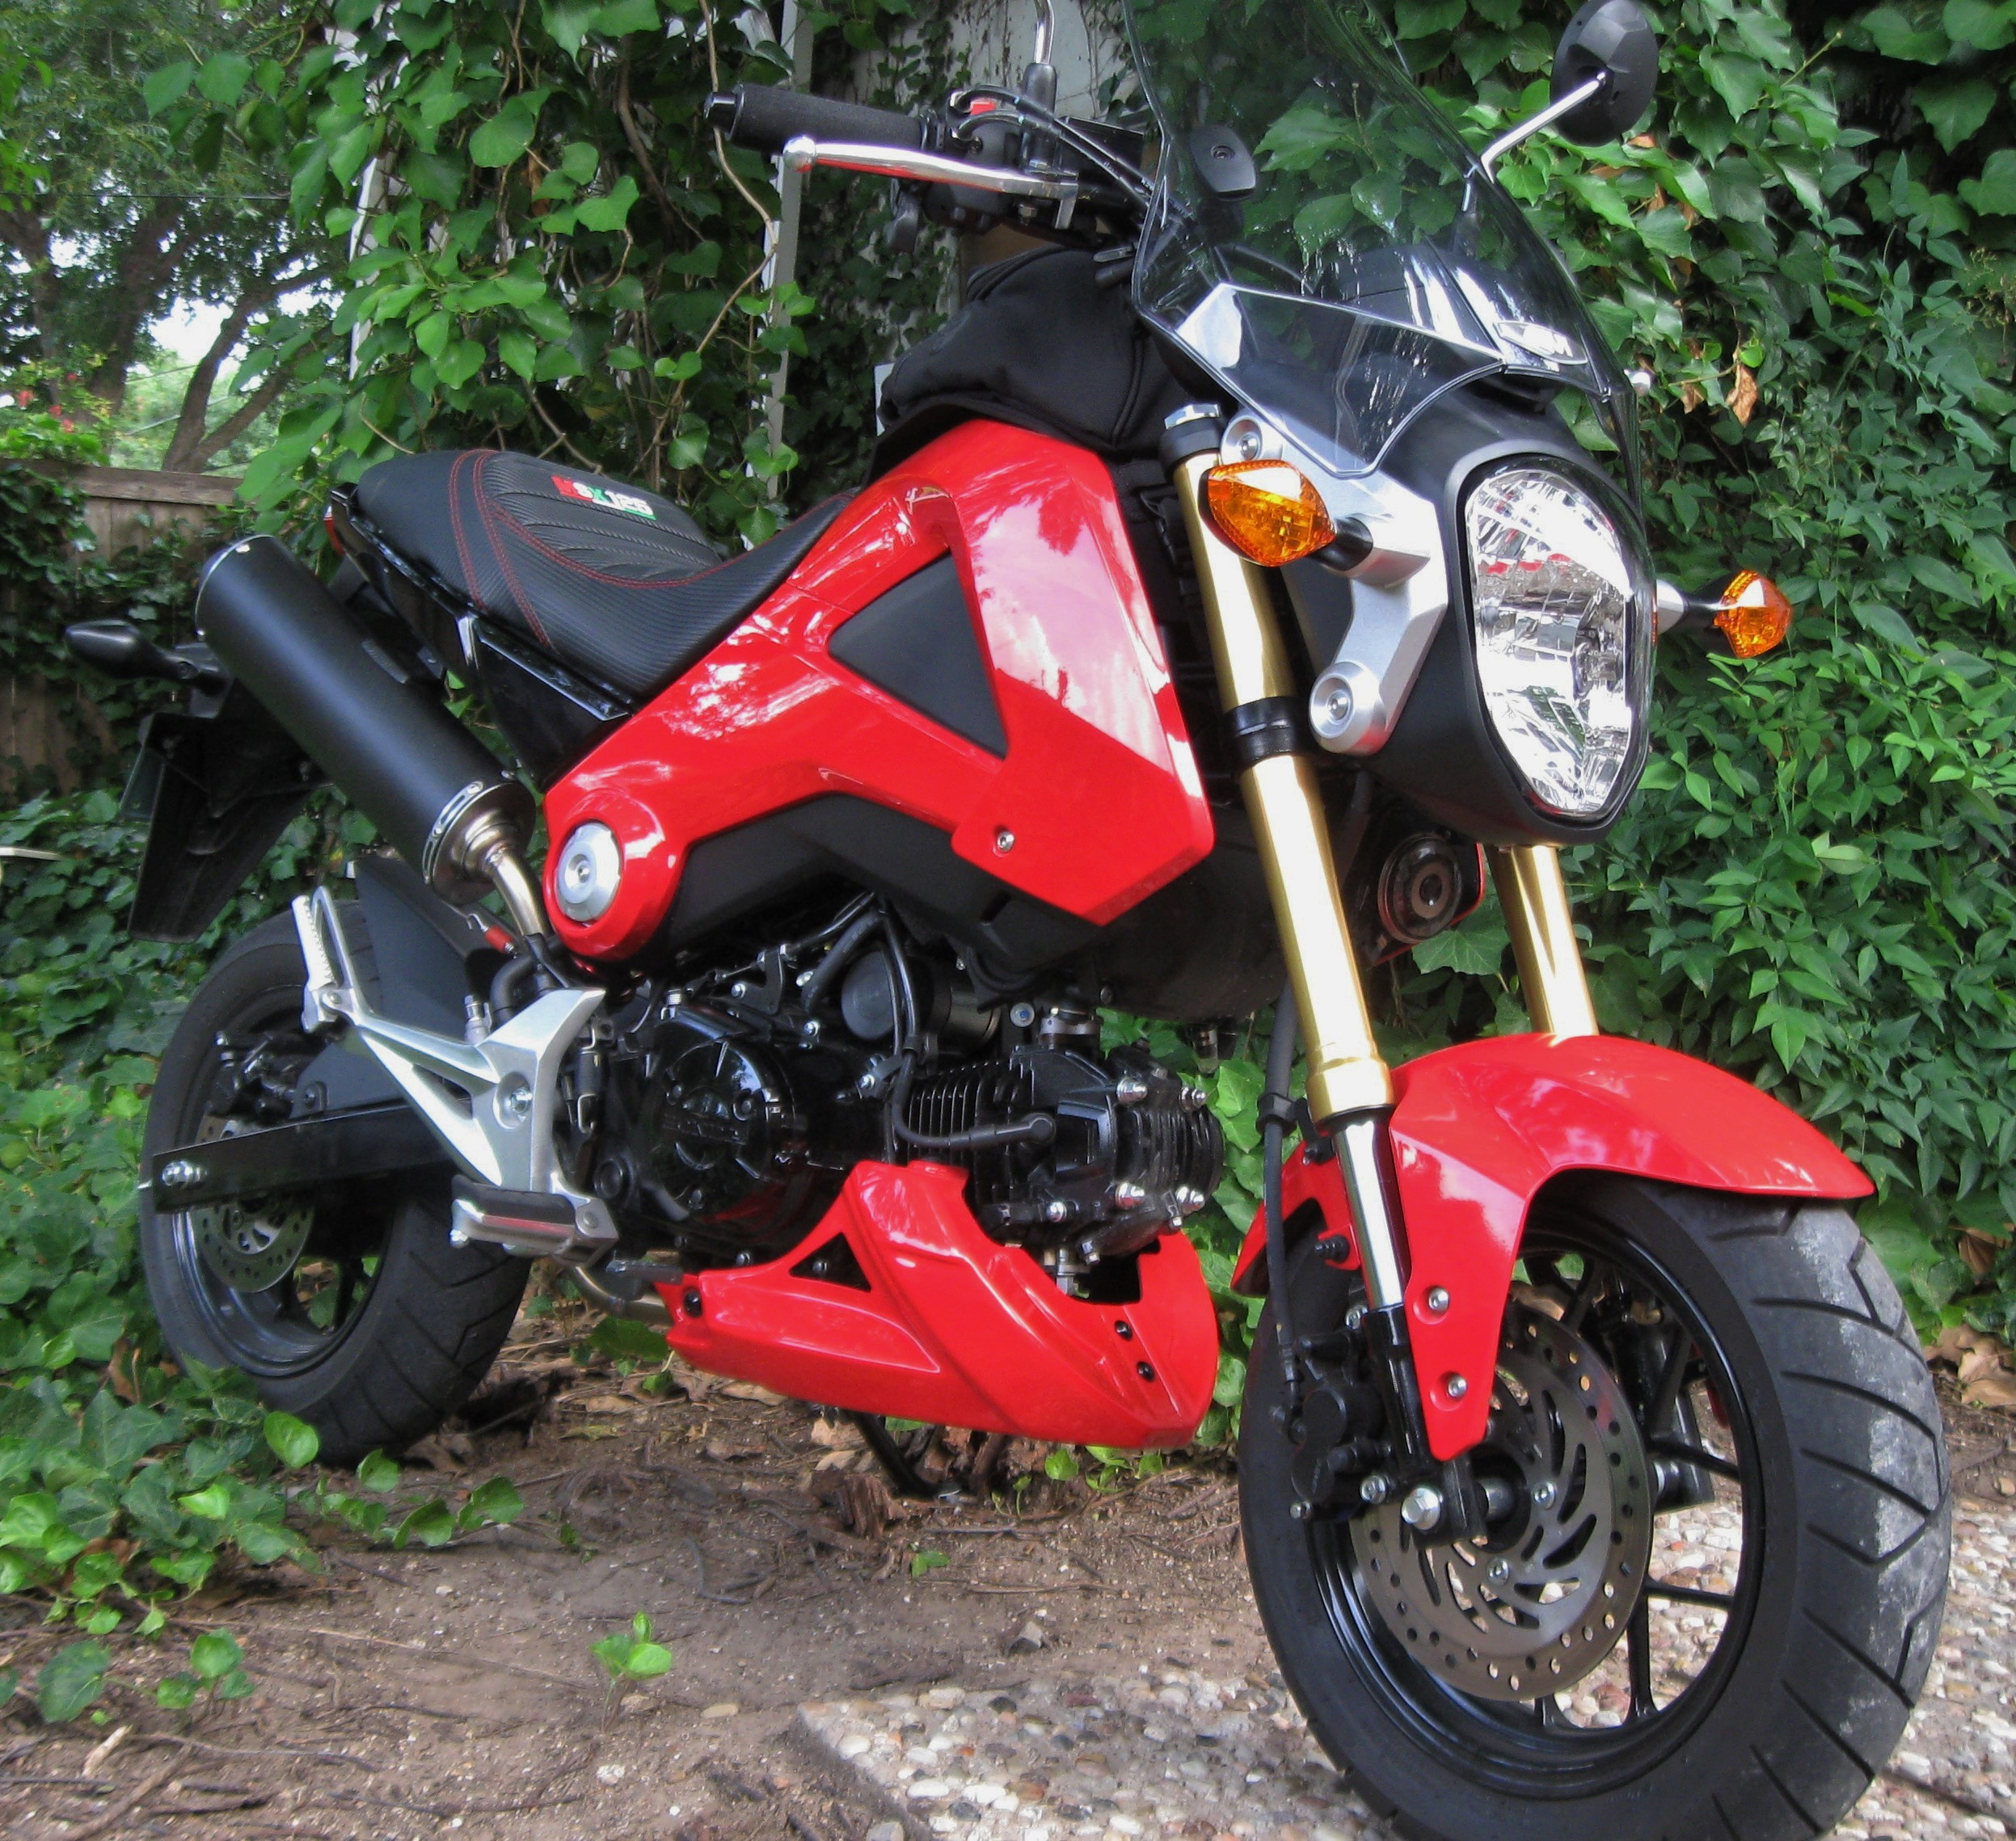 Top Speed on your Grom? - Page 8